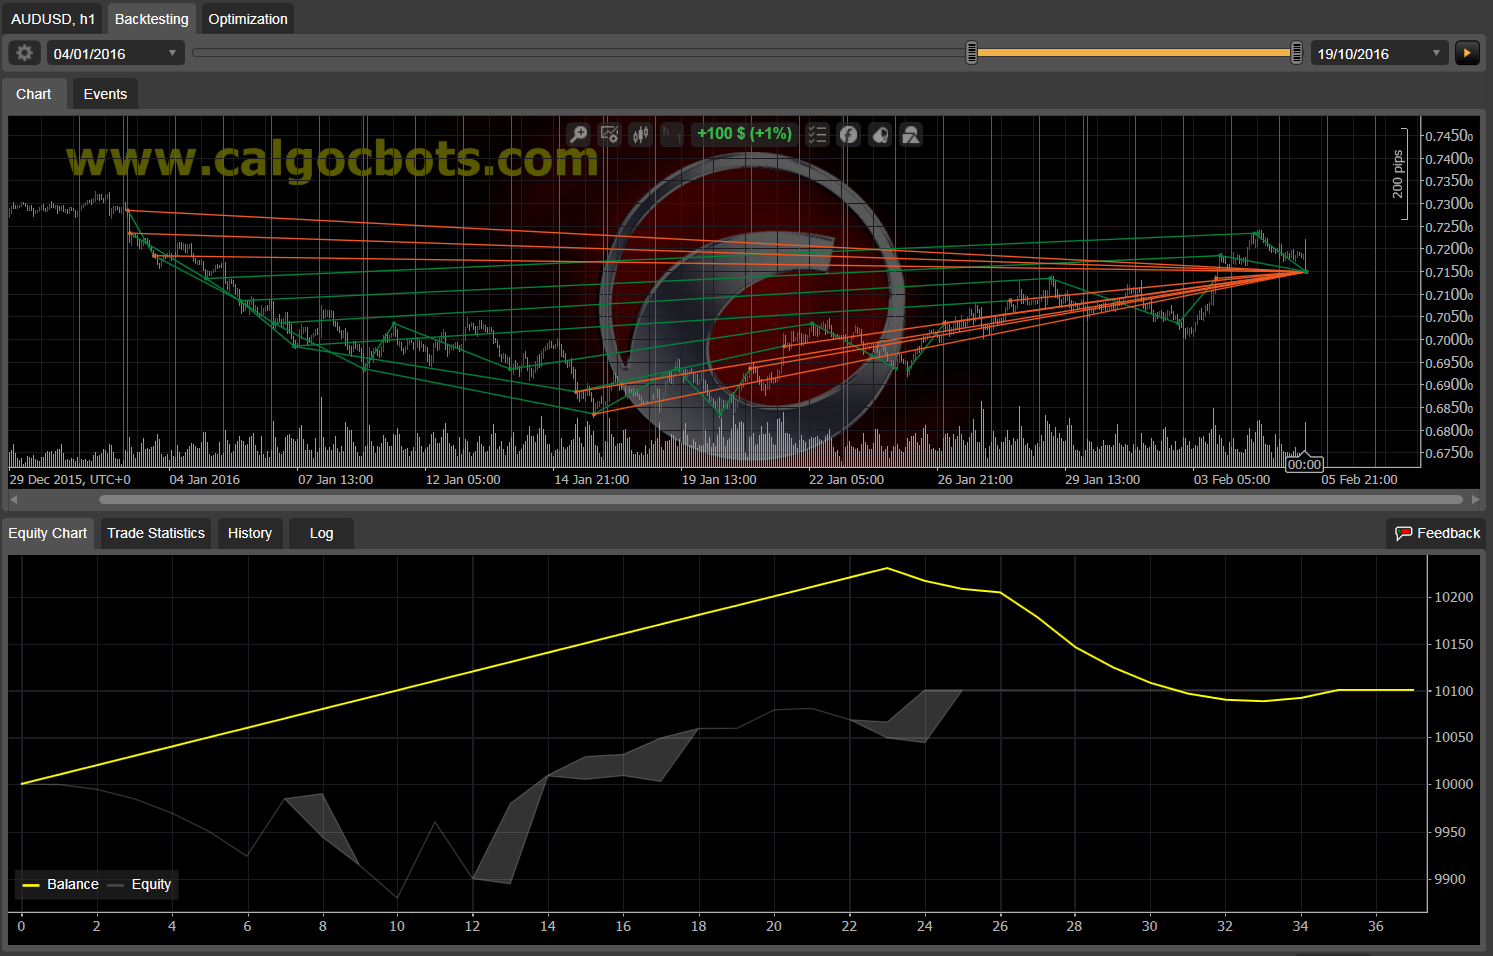 Dual Grid Hedge AUD USD 1h cAlgo cBots cTrader 1k 100 50 100 - 06